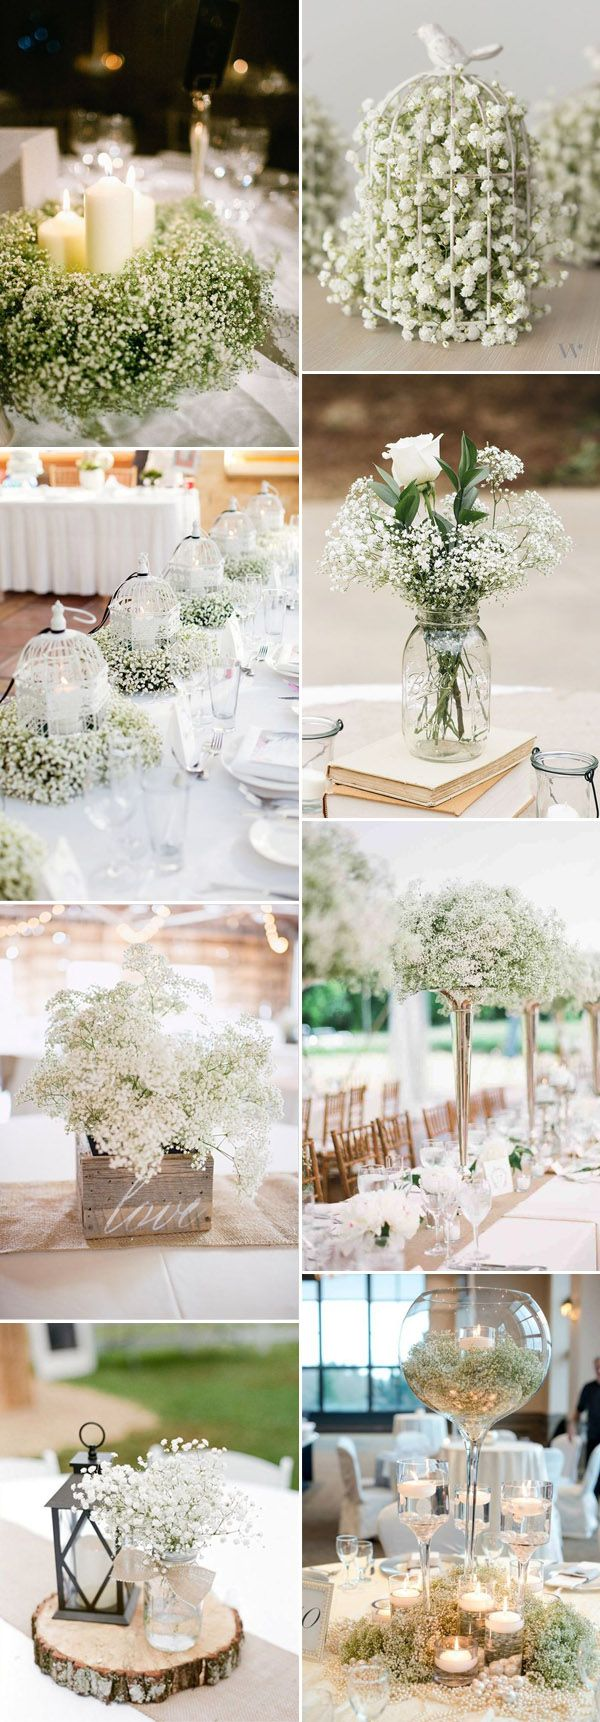 Save Your Budget on Weddings with 45 Baby\'s Breath Ideas | Wedding ...